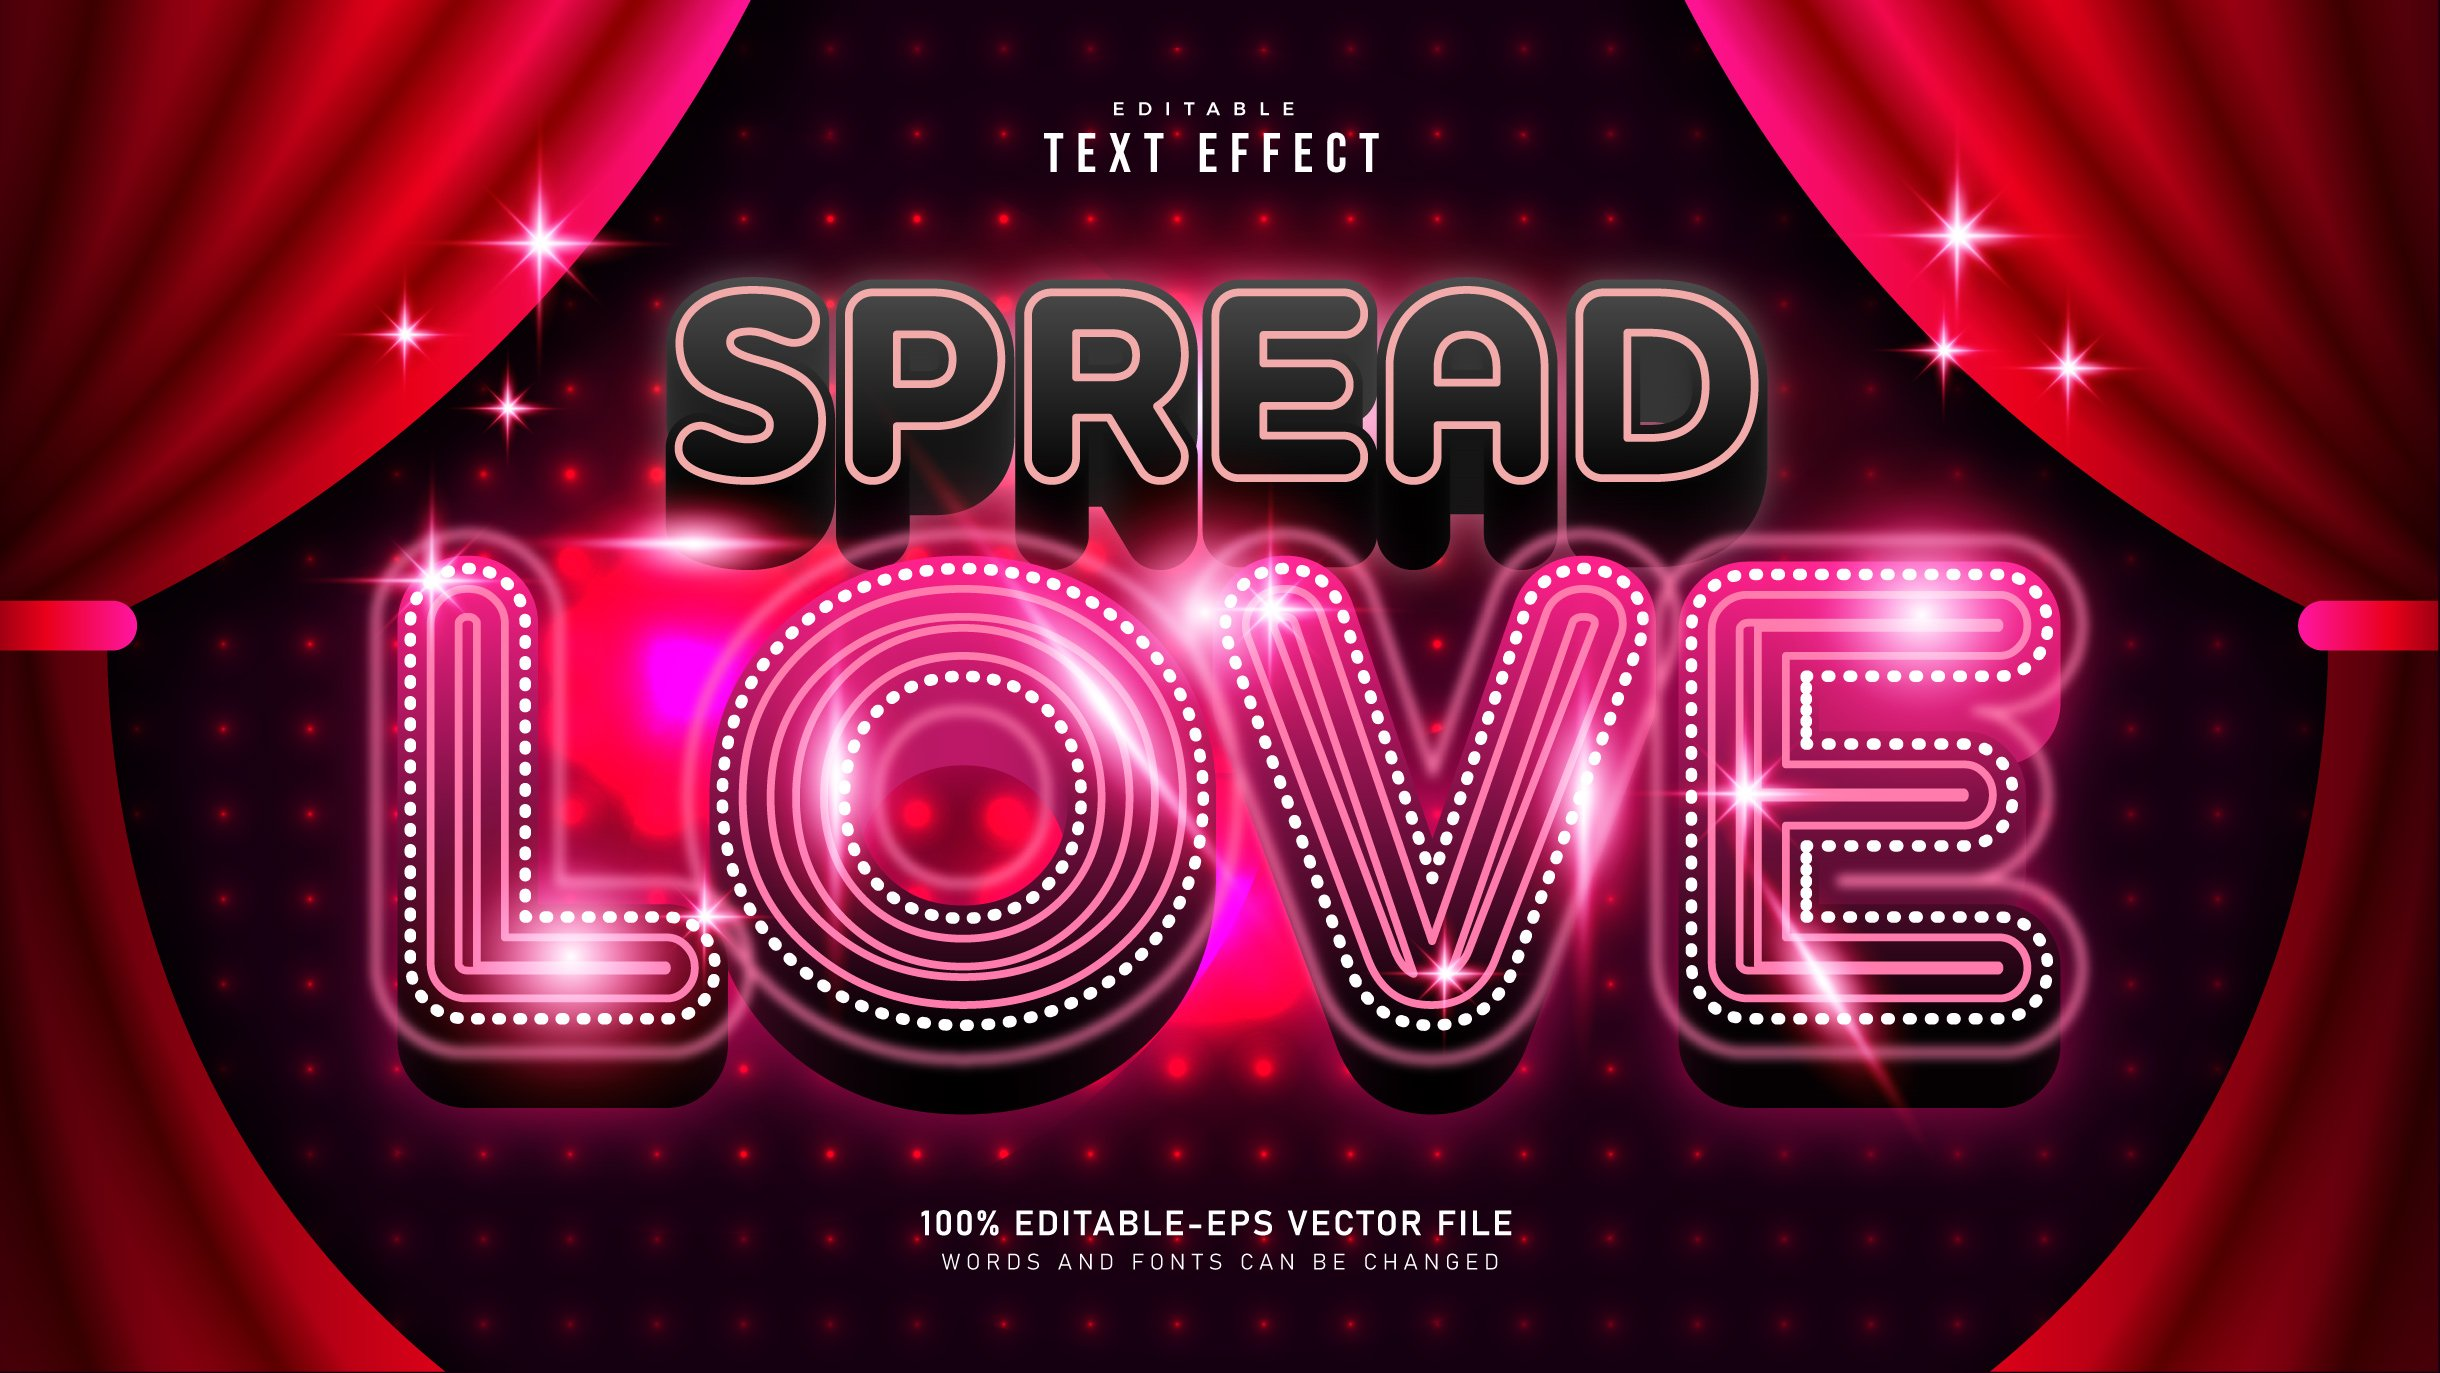 Spread Love Movie Time Text Style Effect